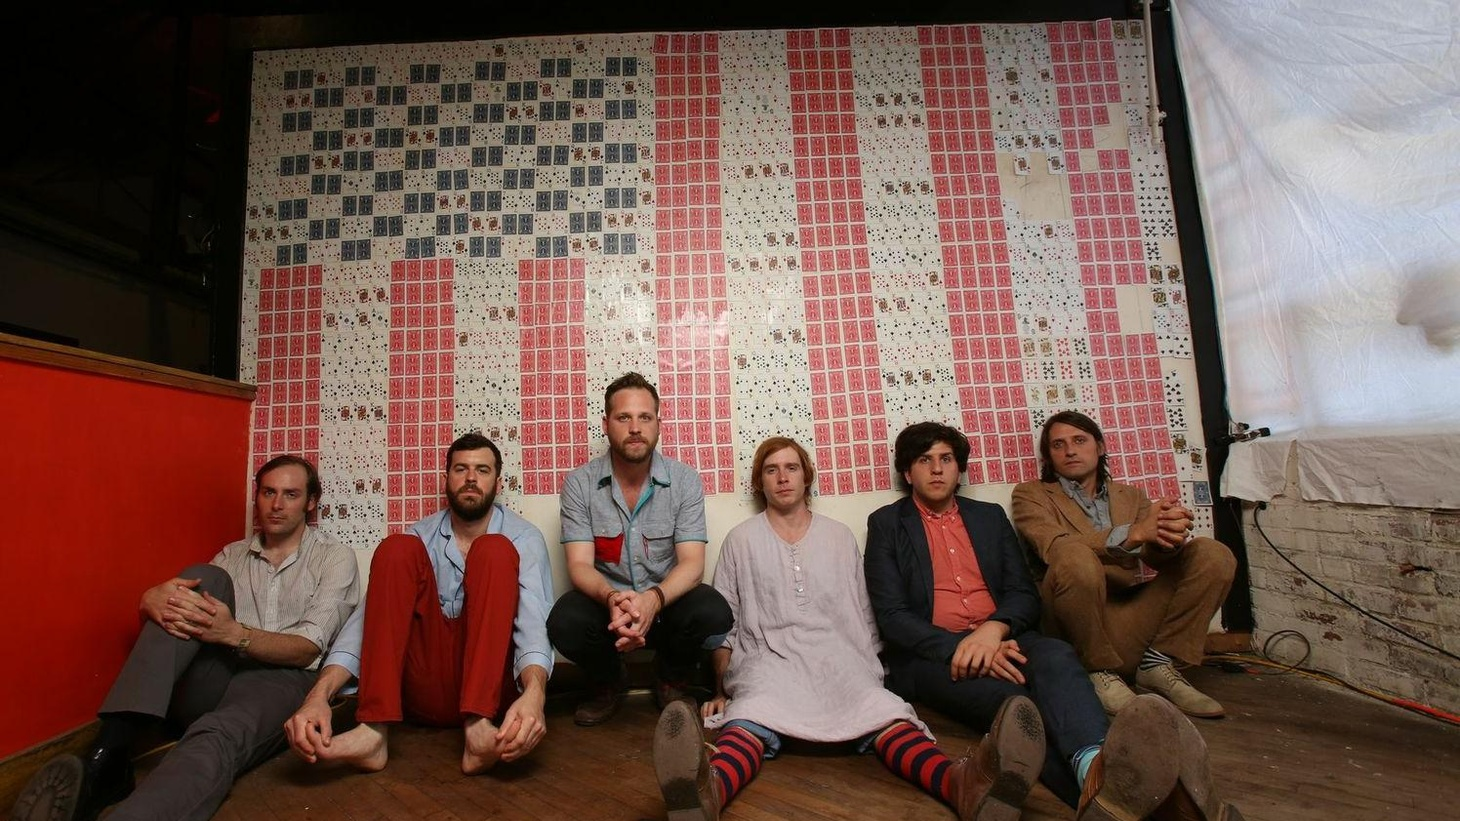 You can hear the camaraderie of Philly-based band Dr. Dog on their new release, a mix of bare bones arrangements and their usual layered approach.